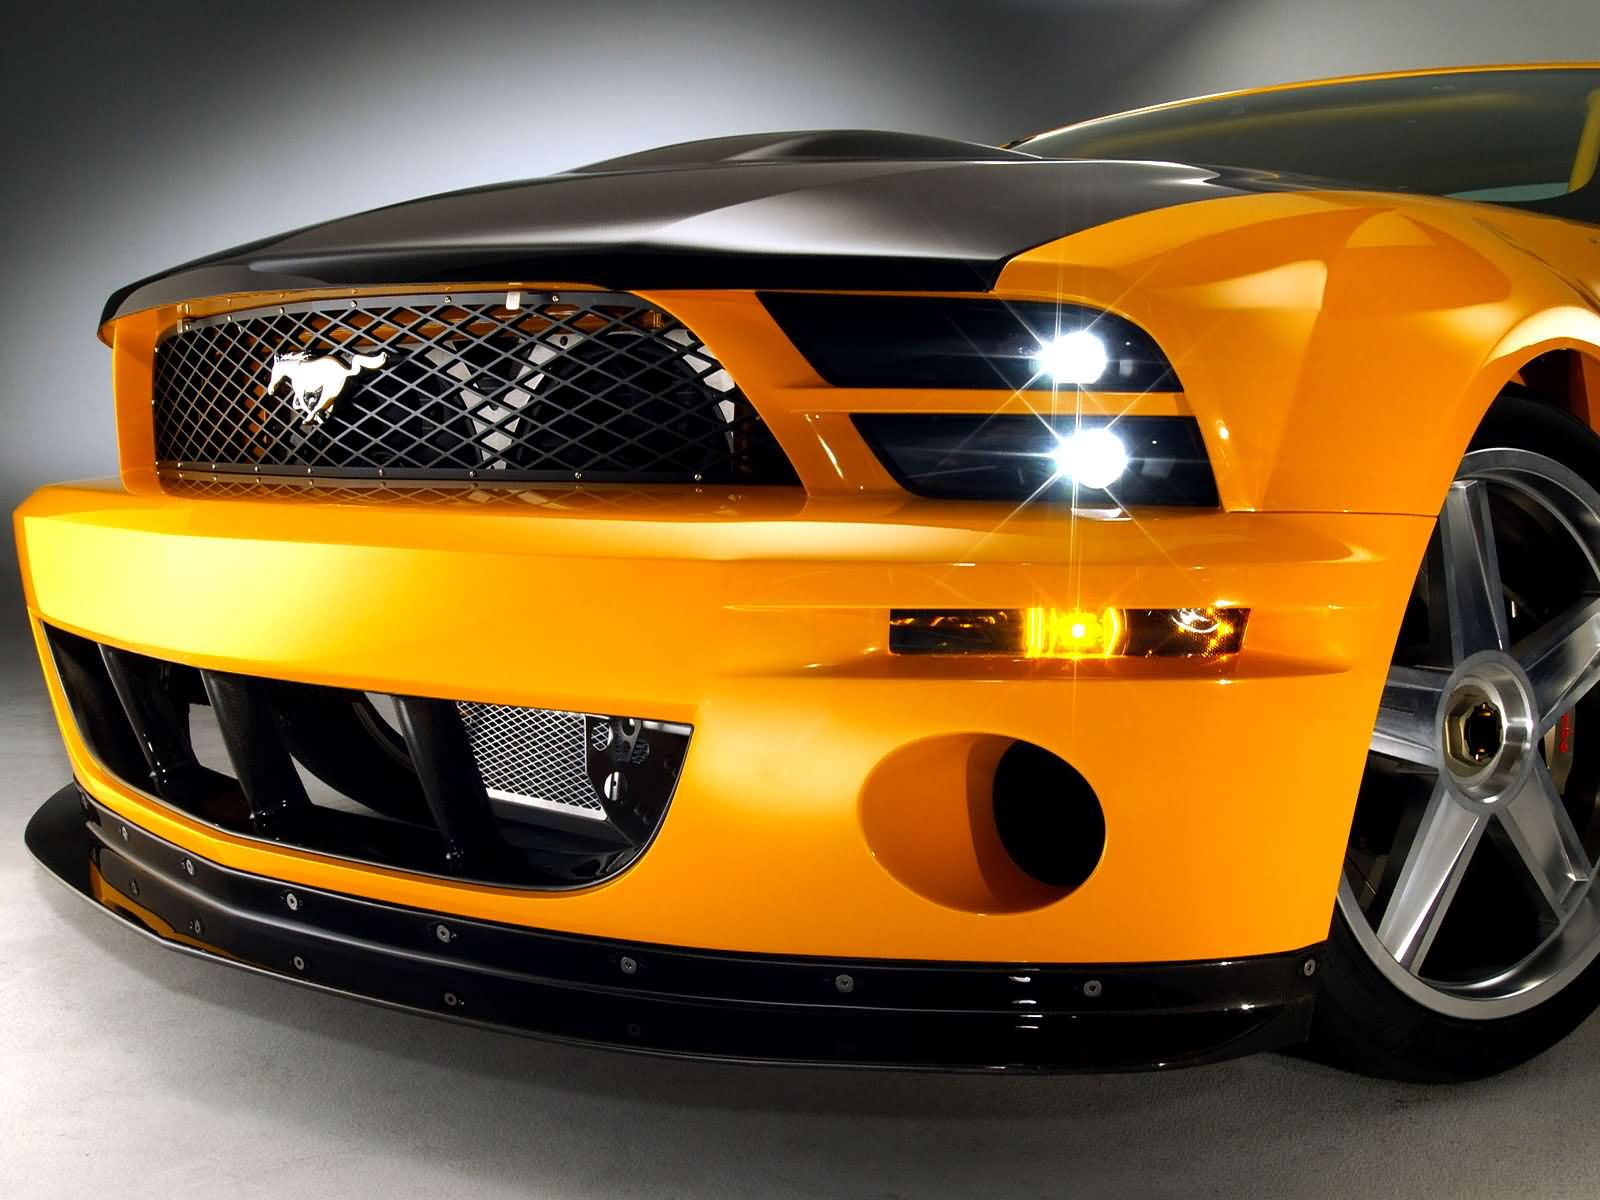 Gt500 Mustang 2015 >> Ford Mustang GT